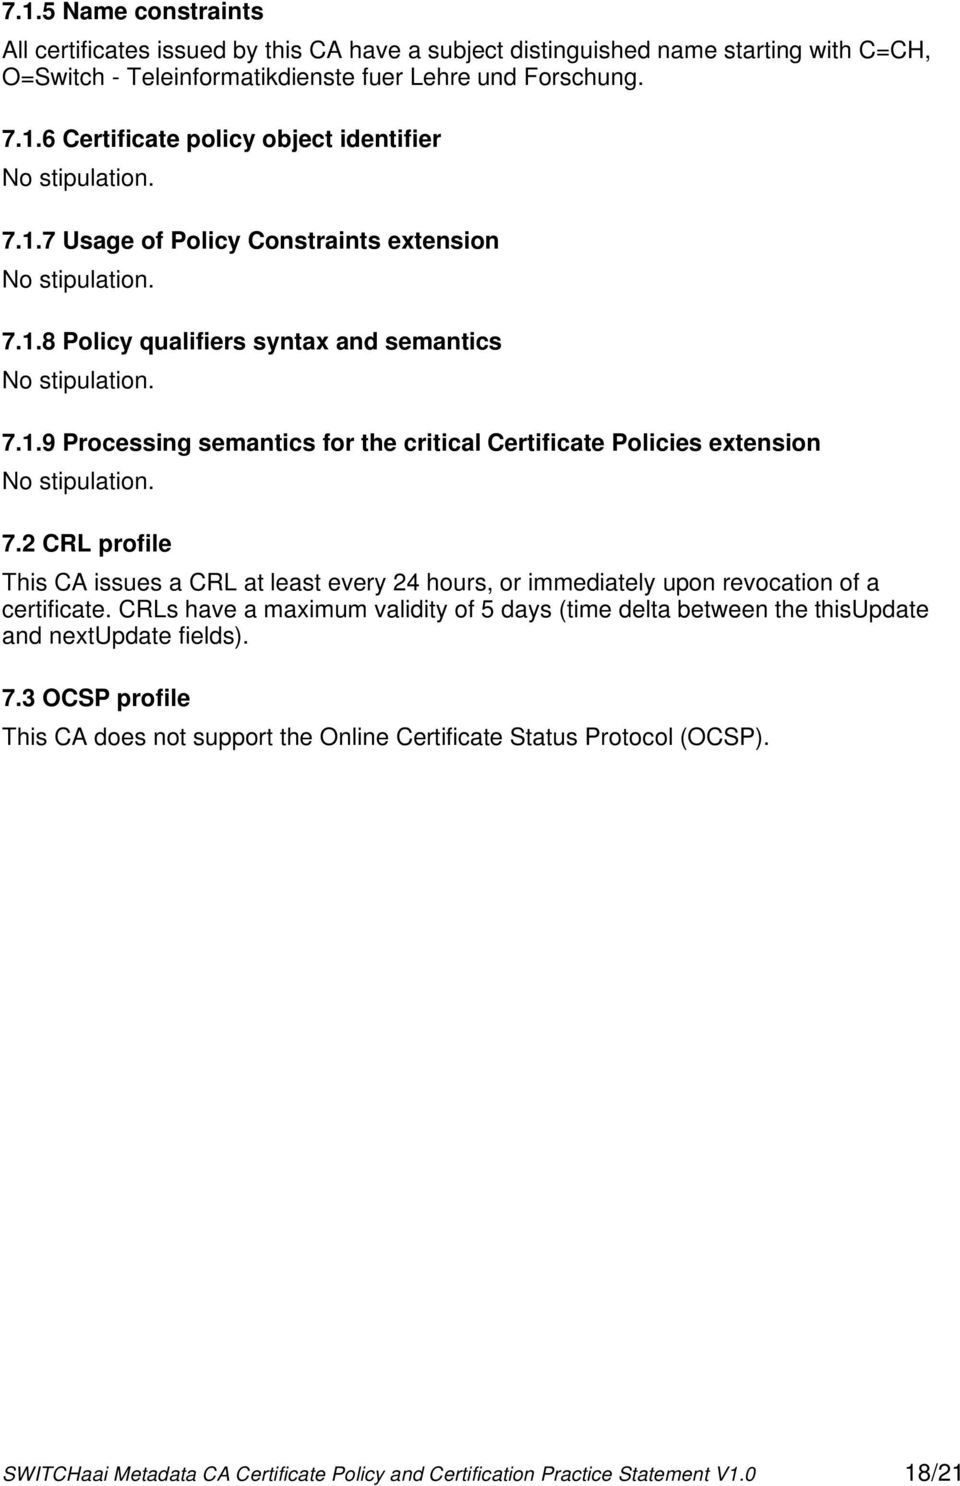 7.2 CRL profile This CA issues a CRL at least every 24 hours, or immediately upon revocation of a certificate.